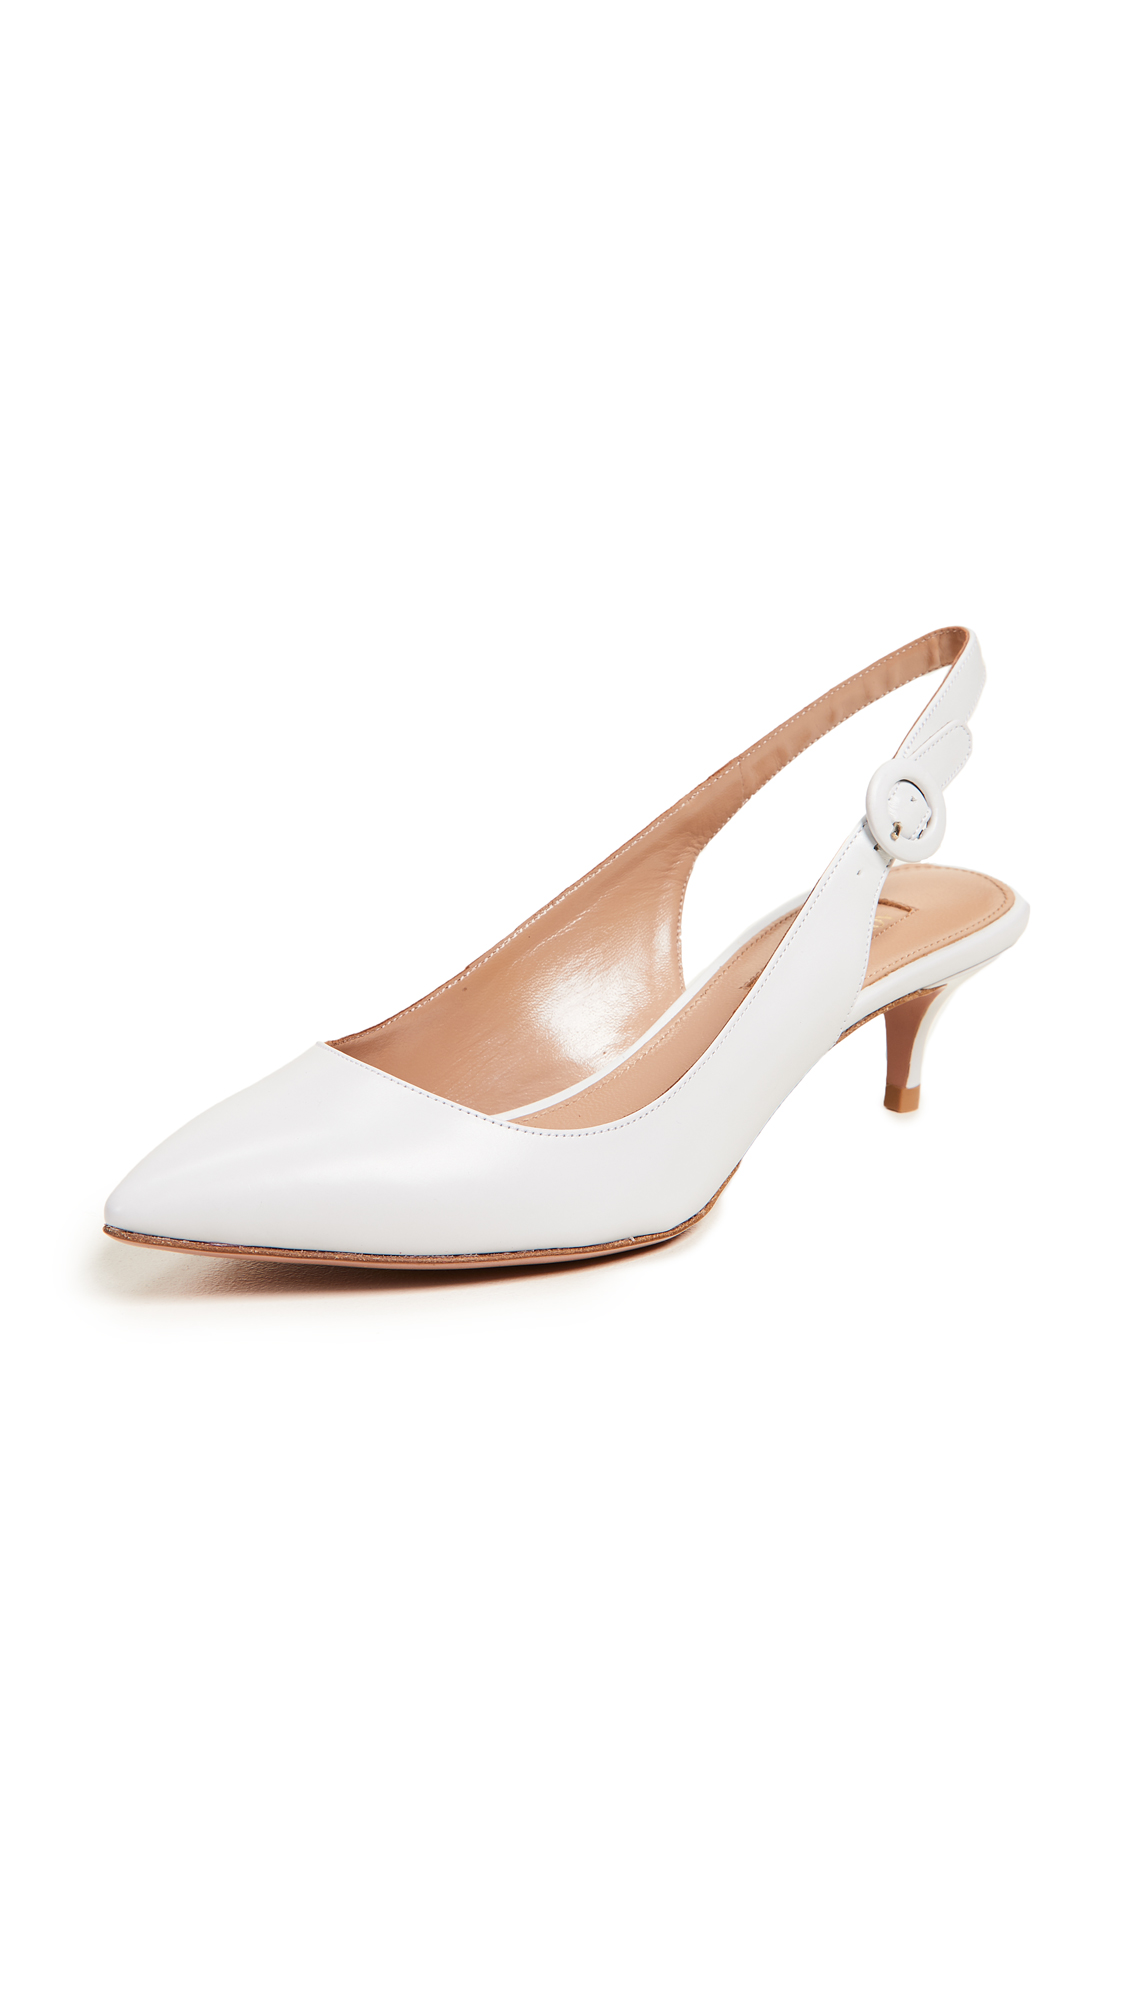 Aquazzura Pure 45 Sling Pumps - White